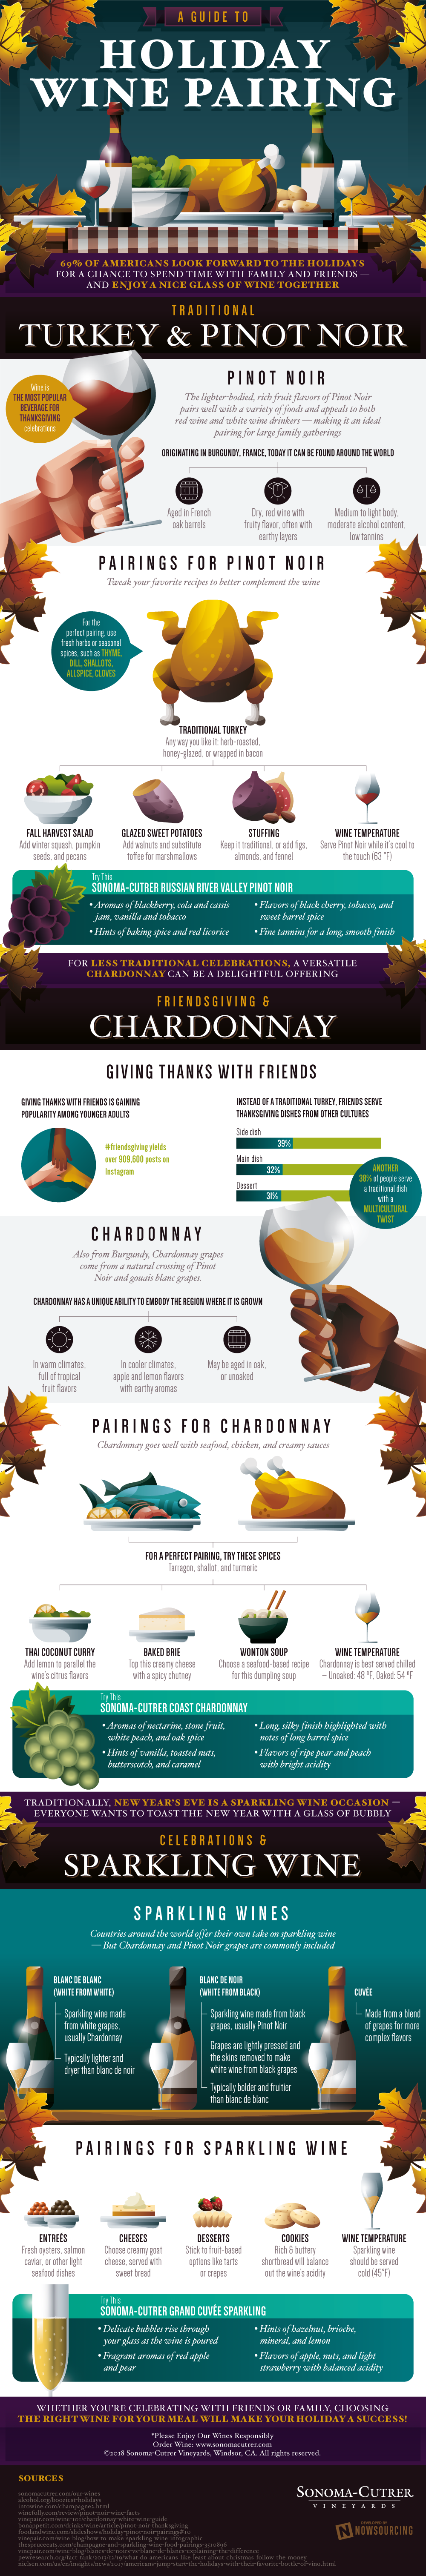 Thanksgiving Holiday Wine Parings Infographic